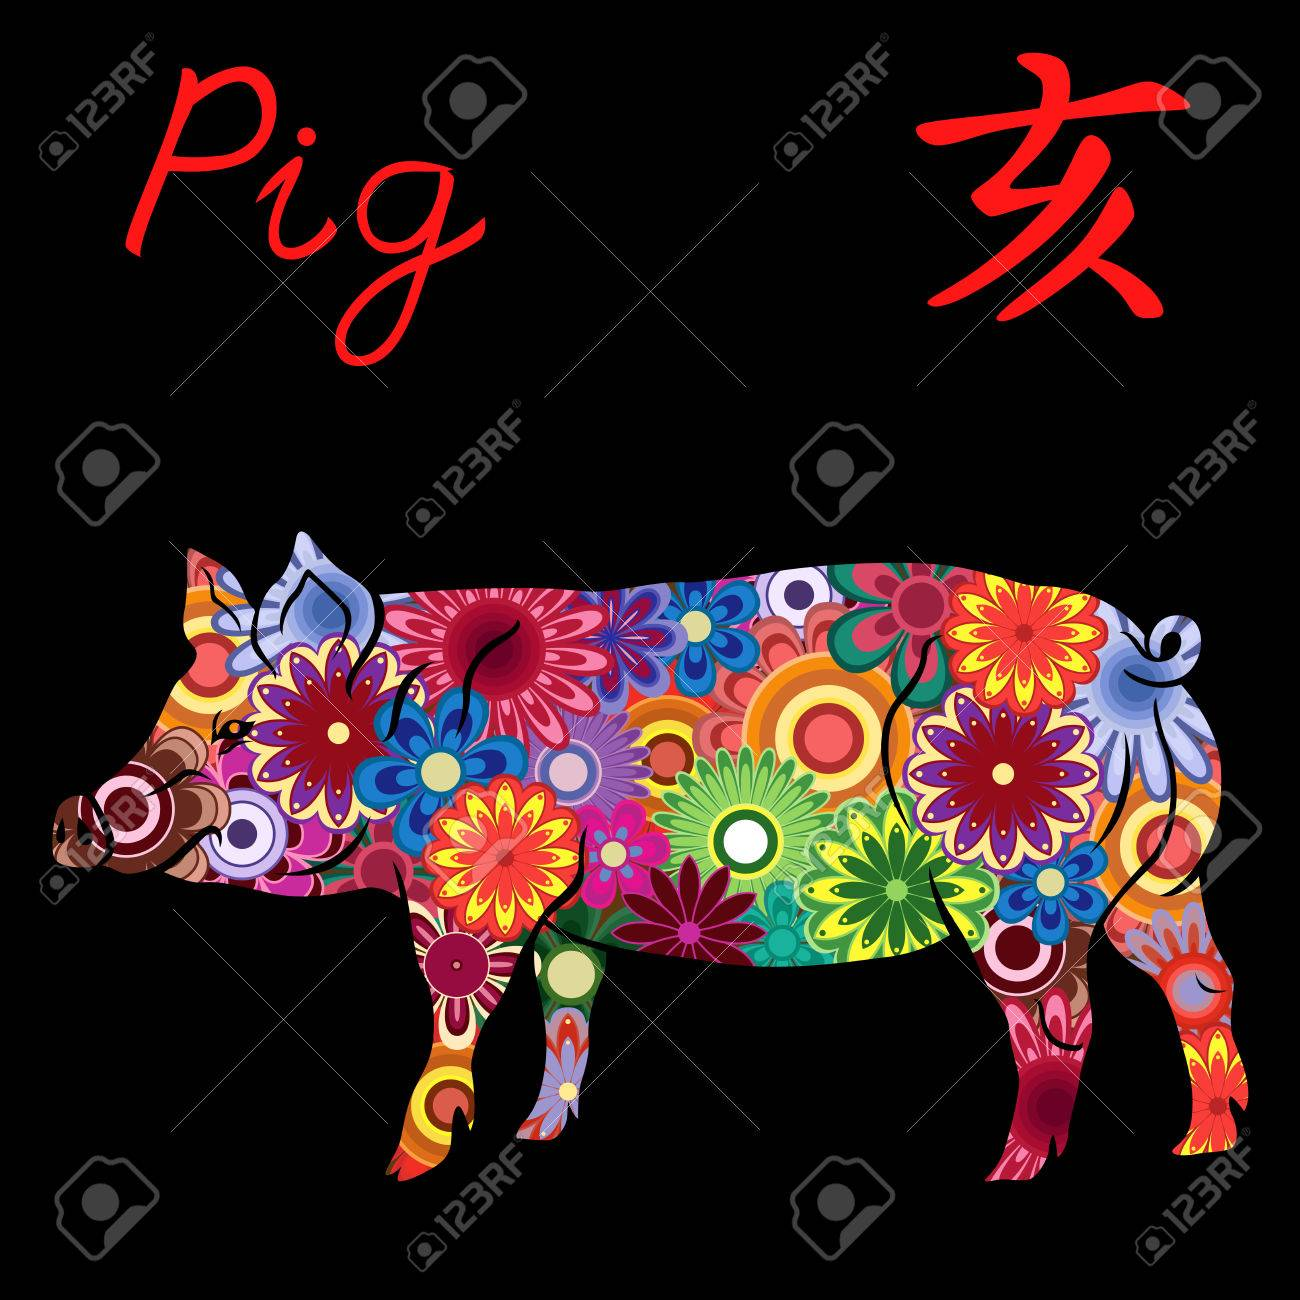 Chinese Zodiac Sign Pig Fixed Element Water Symbol Of New Year